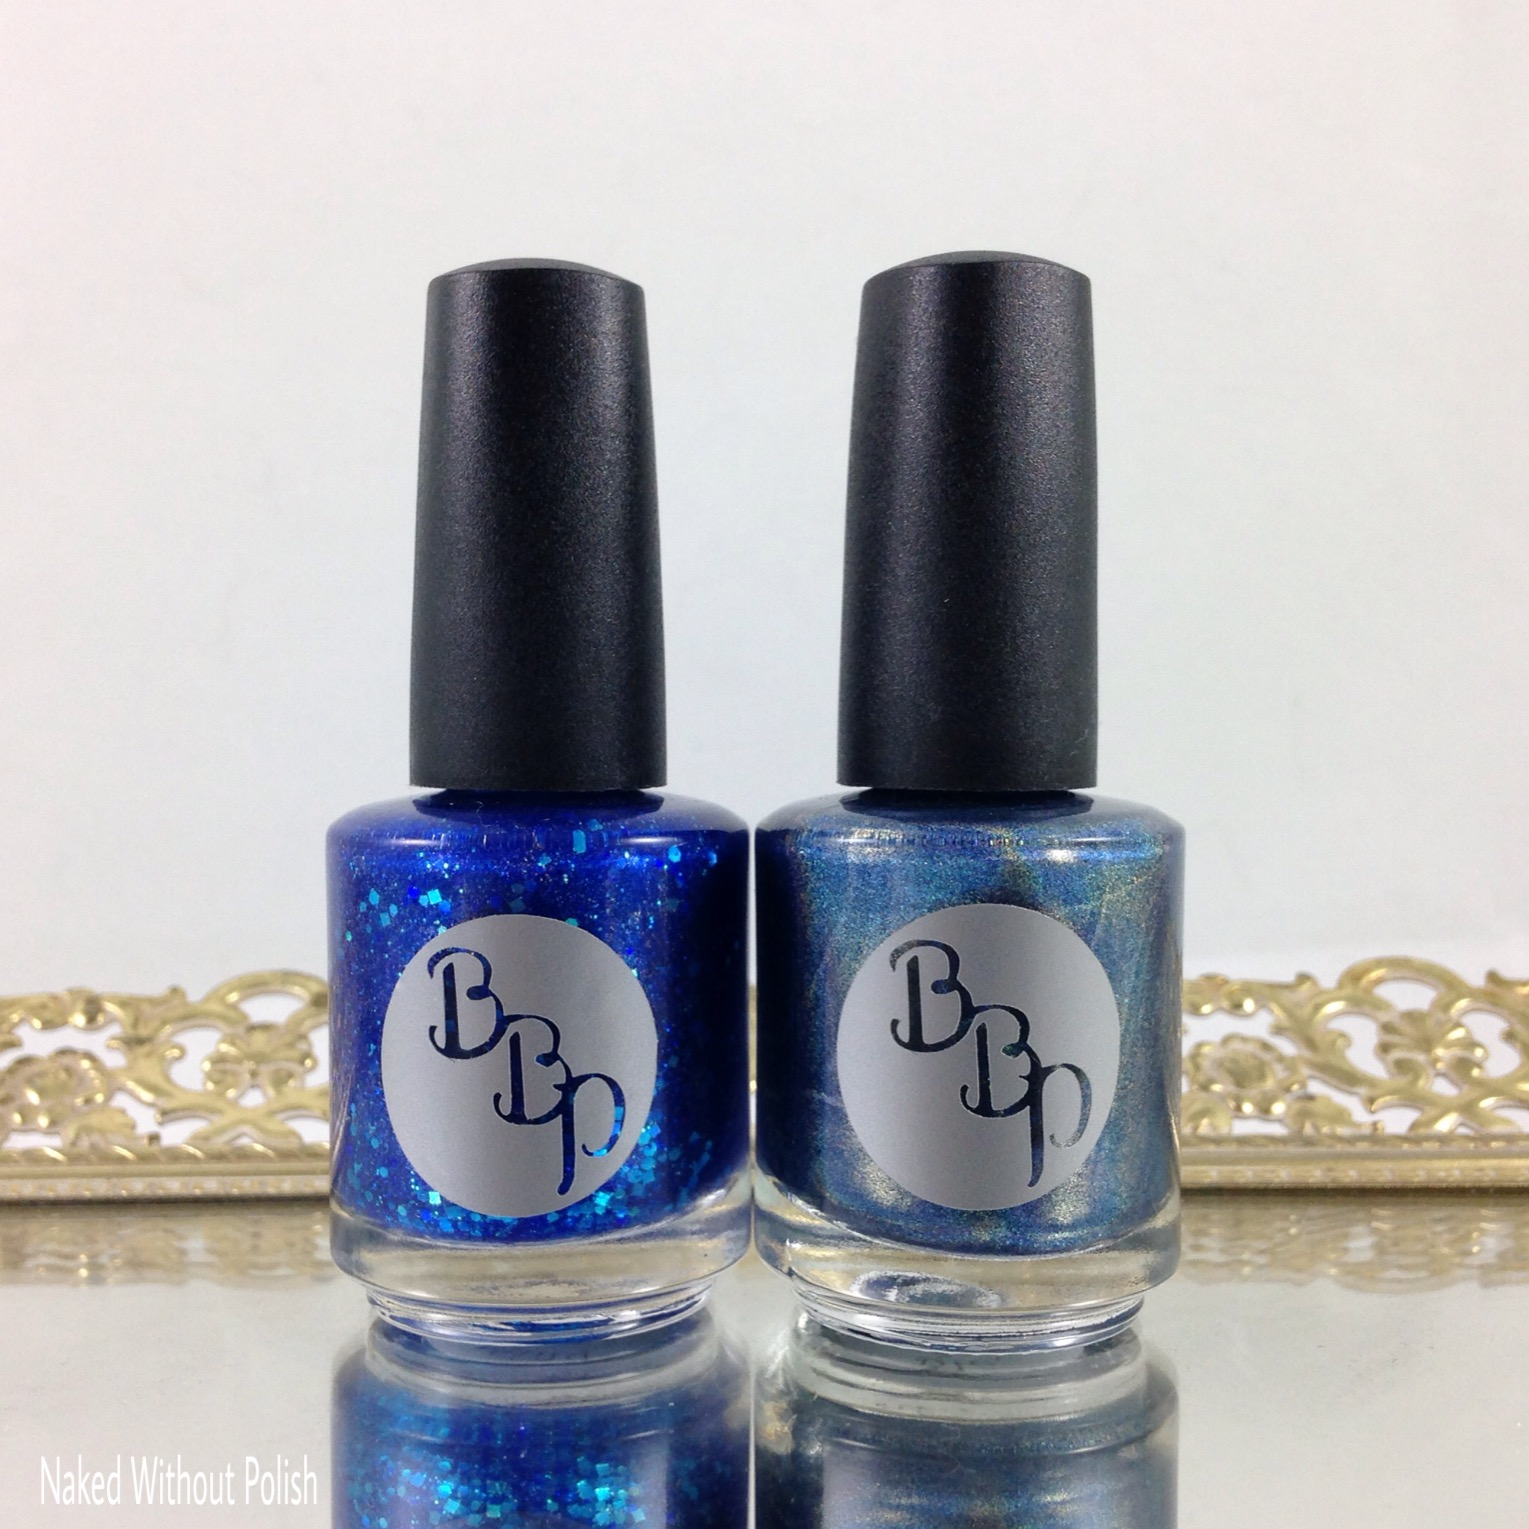 Bad-Bitch-Polish-September-Birthstone-Duo-1